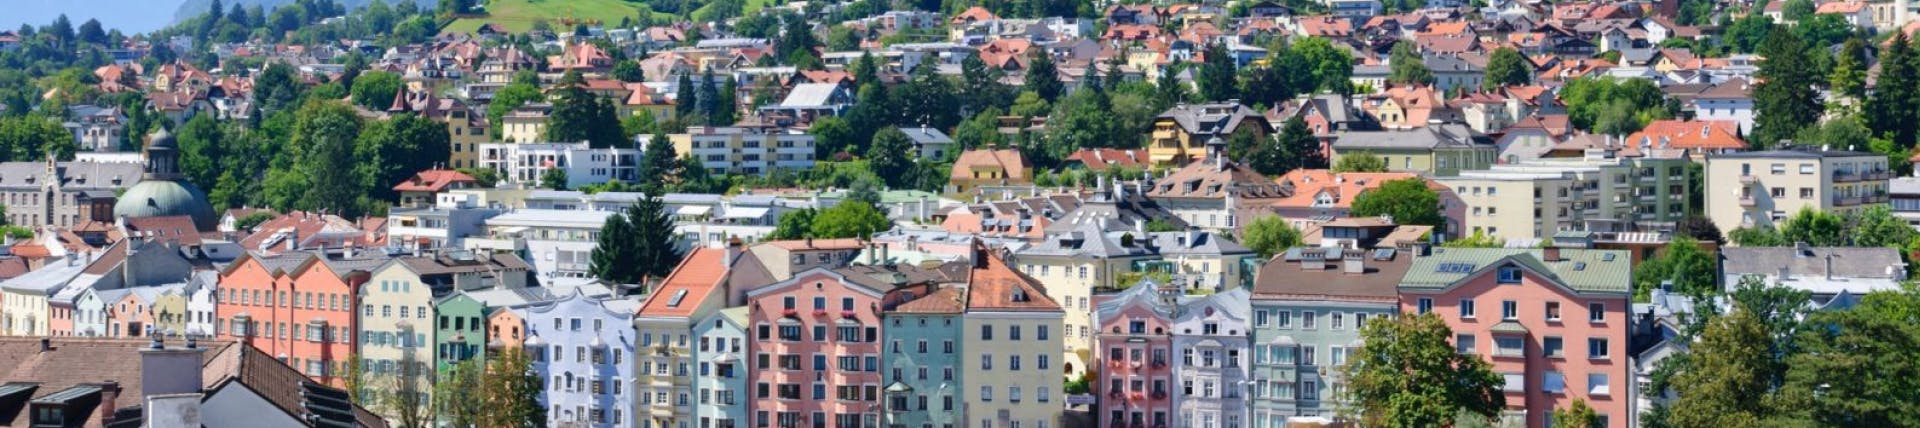 Picture of Innsbruck